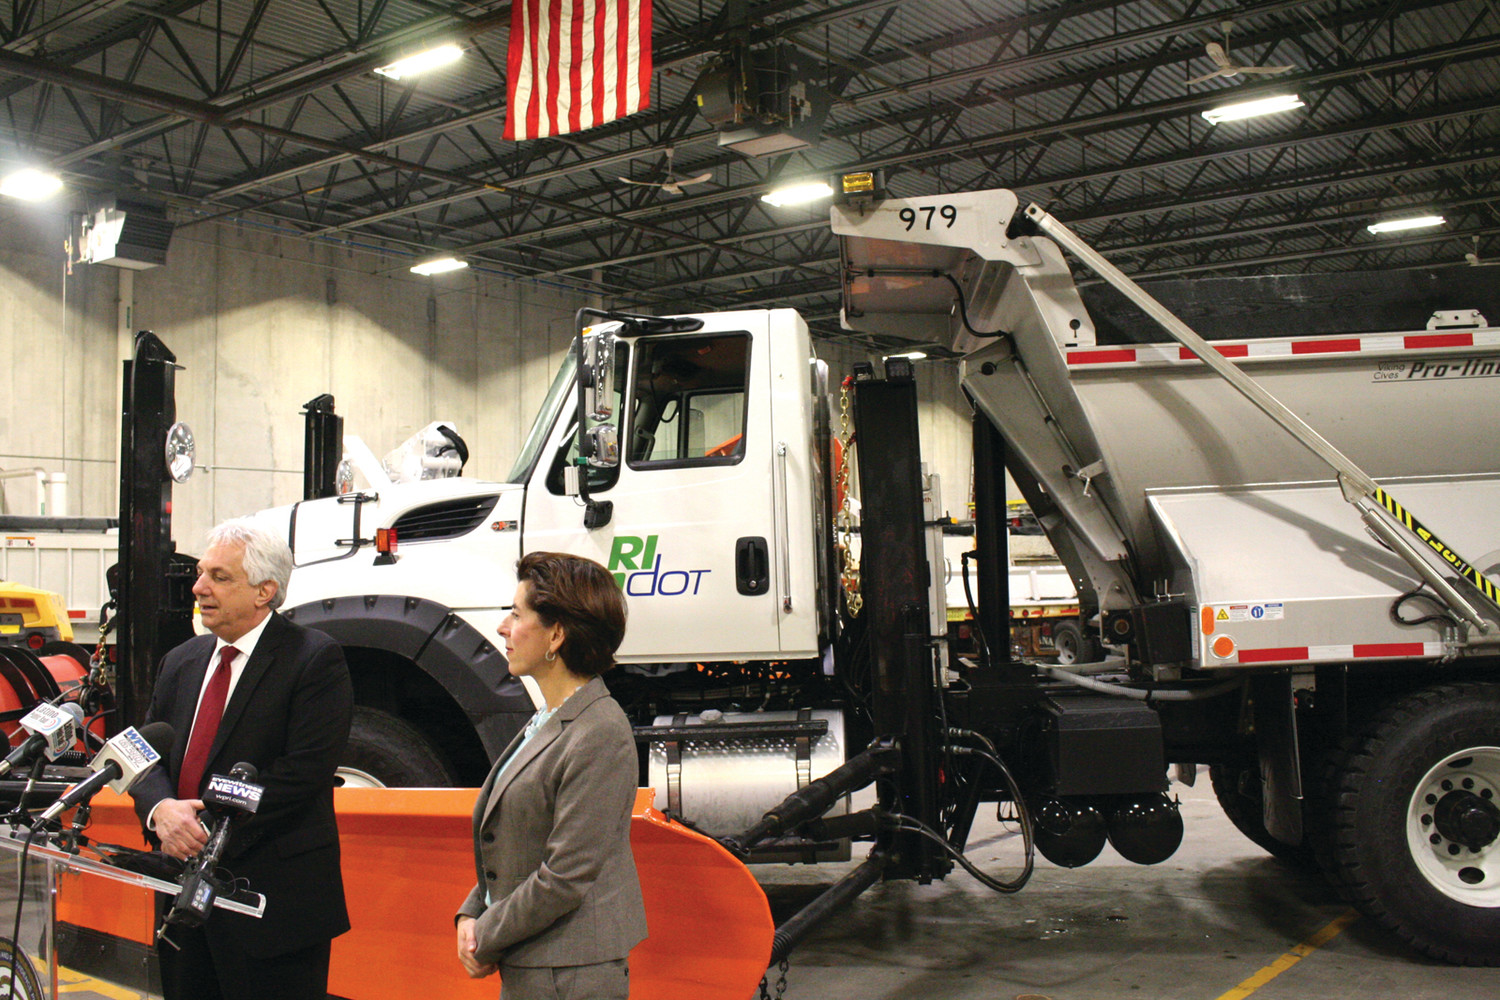 BRAND NEW TRUCKS: Flanked by one of the new state snow plows, Governor Gina Raimondo and DOT Director Peter Alviti Jr. speak to reporters at a DOT garage on Lincoln Avenue in Warwick Tuesday afternoon.